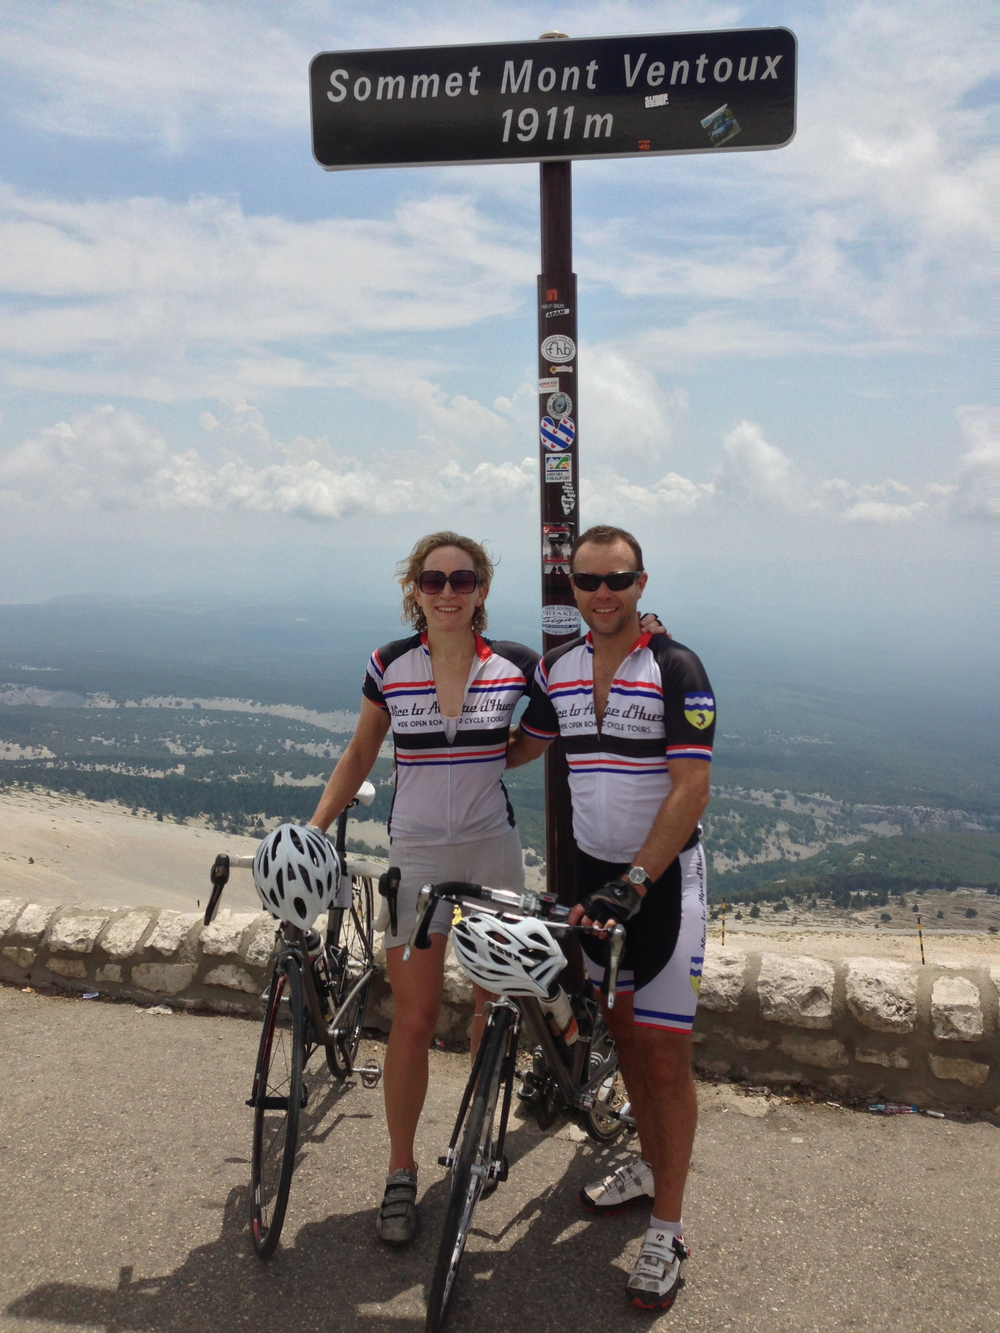 A hot and sweaty Clare with crew member Paul on her most recent ascent of Mt Ventoux as pat of Wide Open Road's Nice to Alpe d'Huez cycling holiday in 2013.